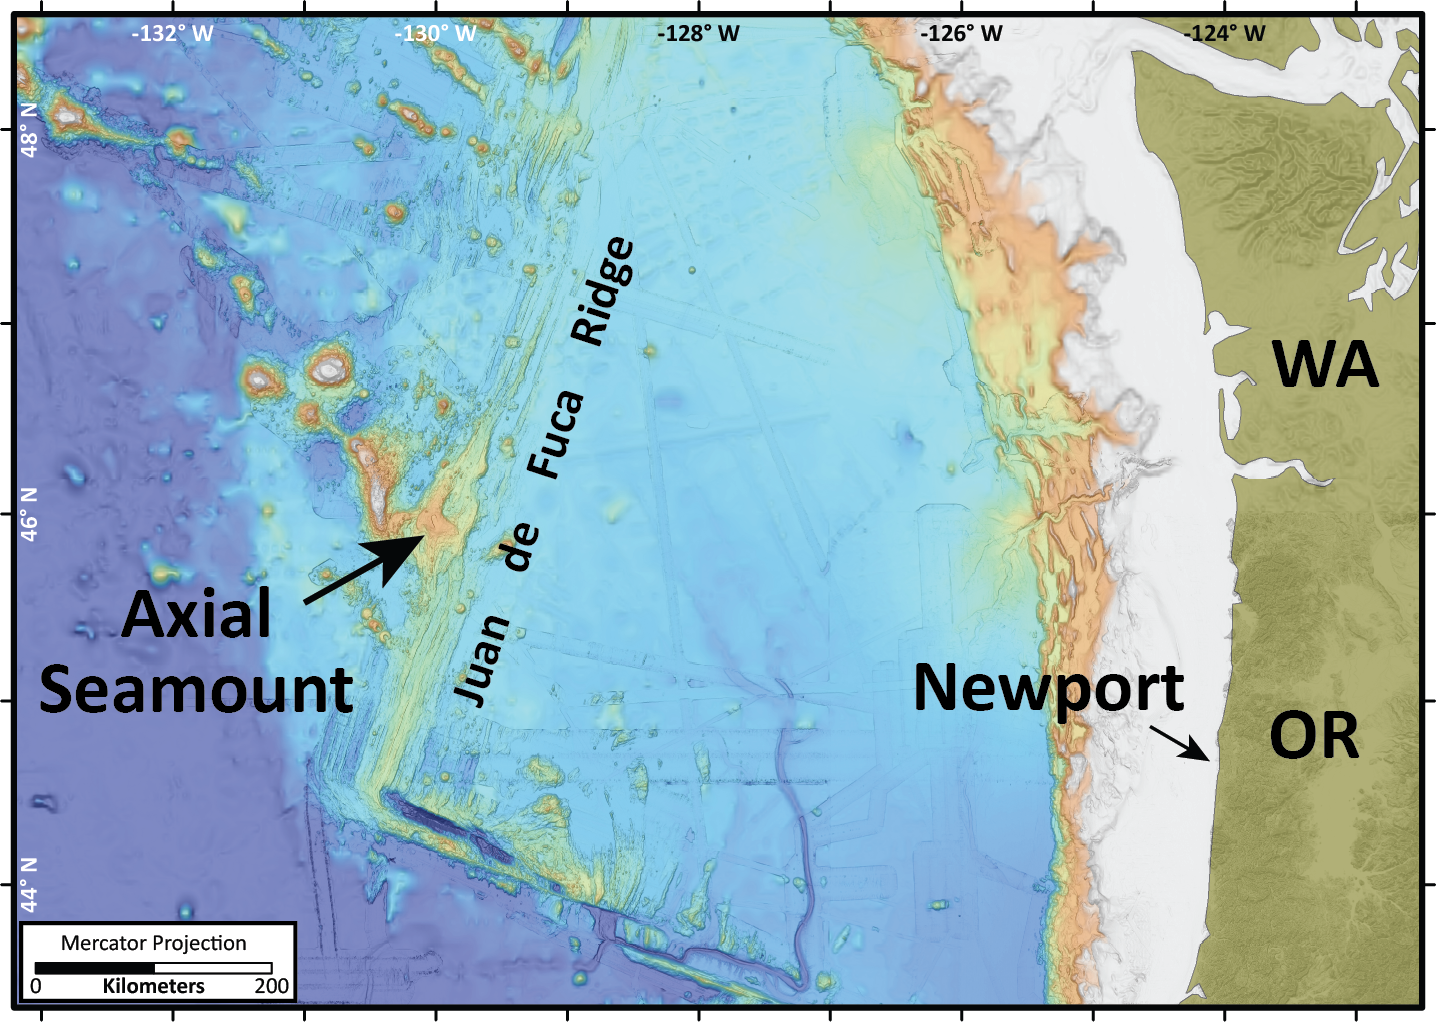 Where is Axial Seamount?